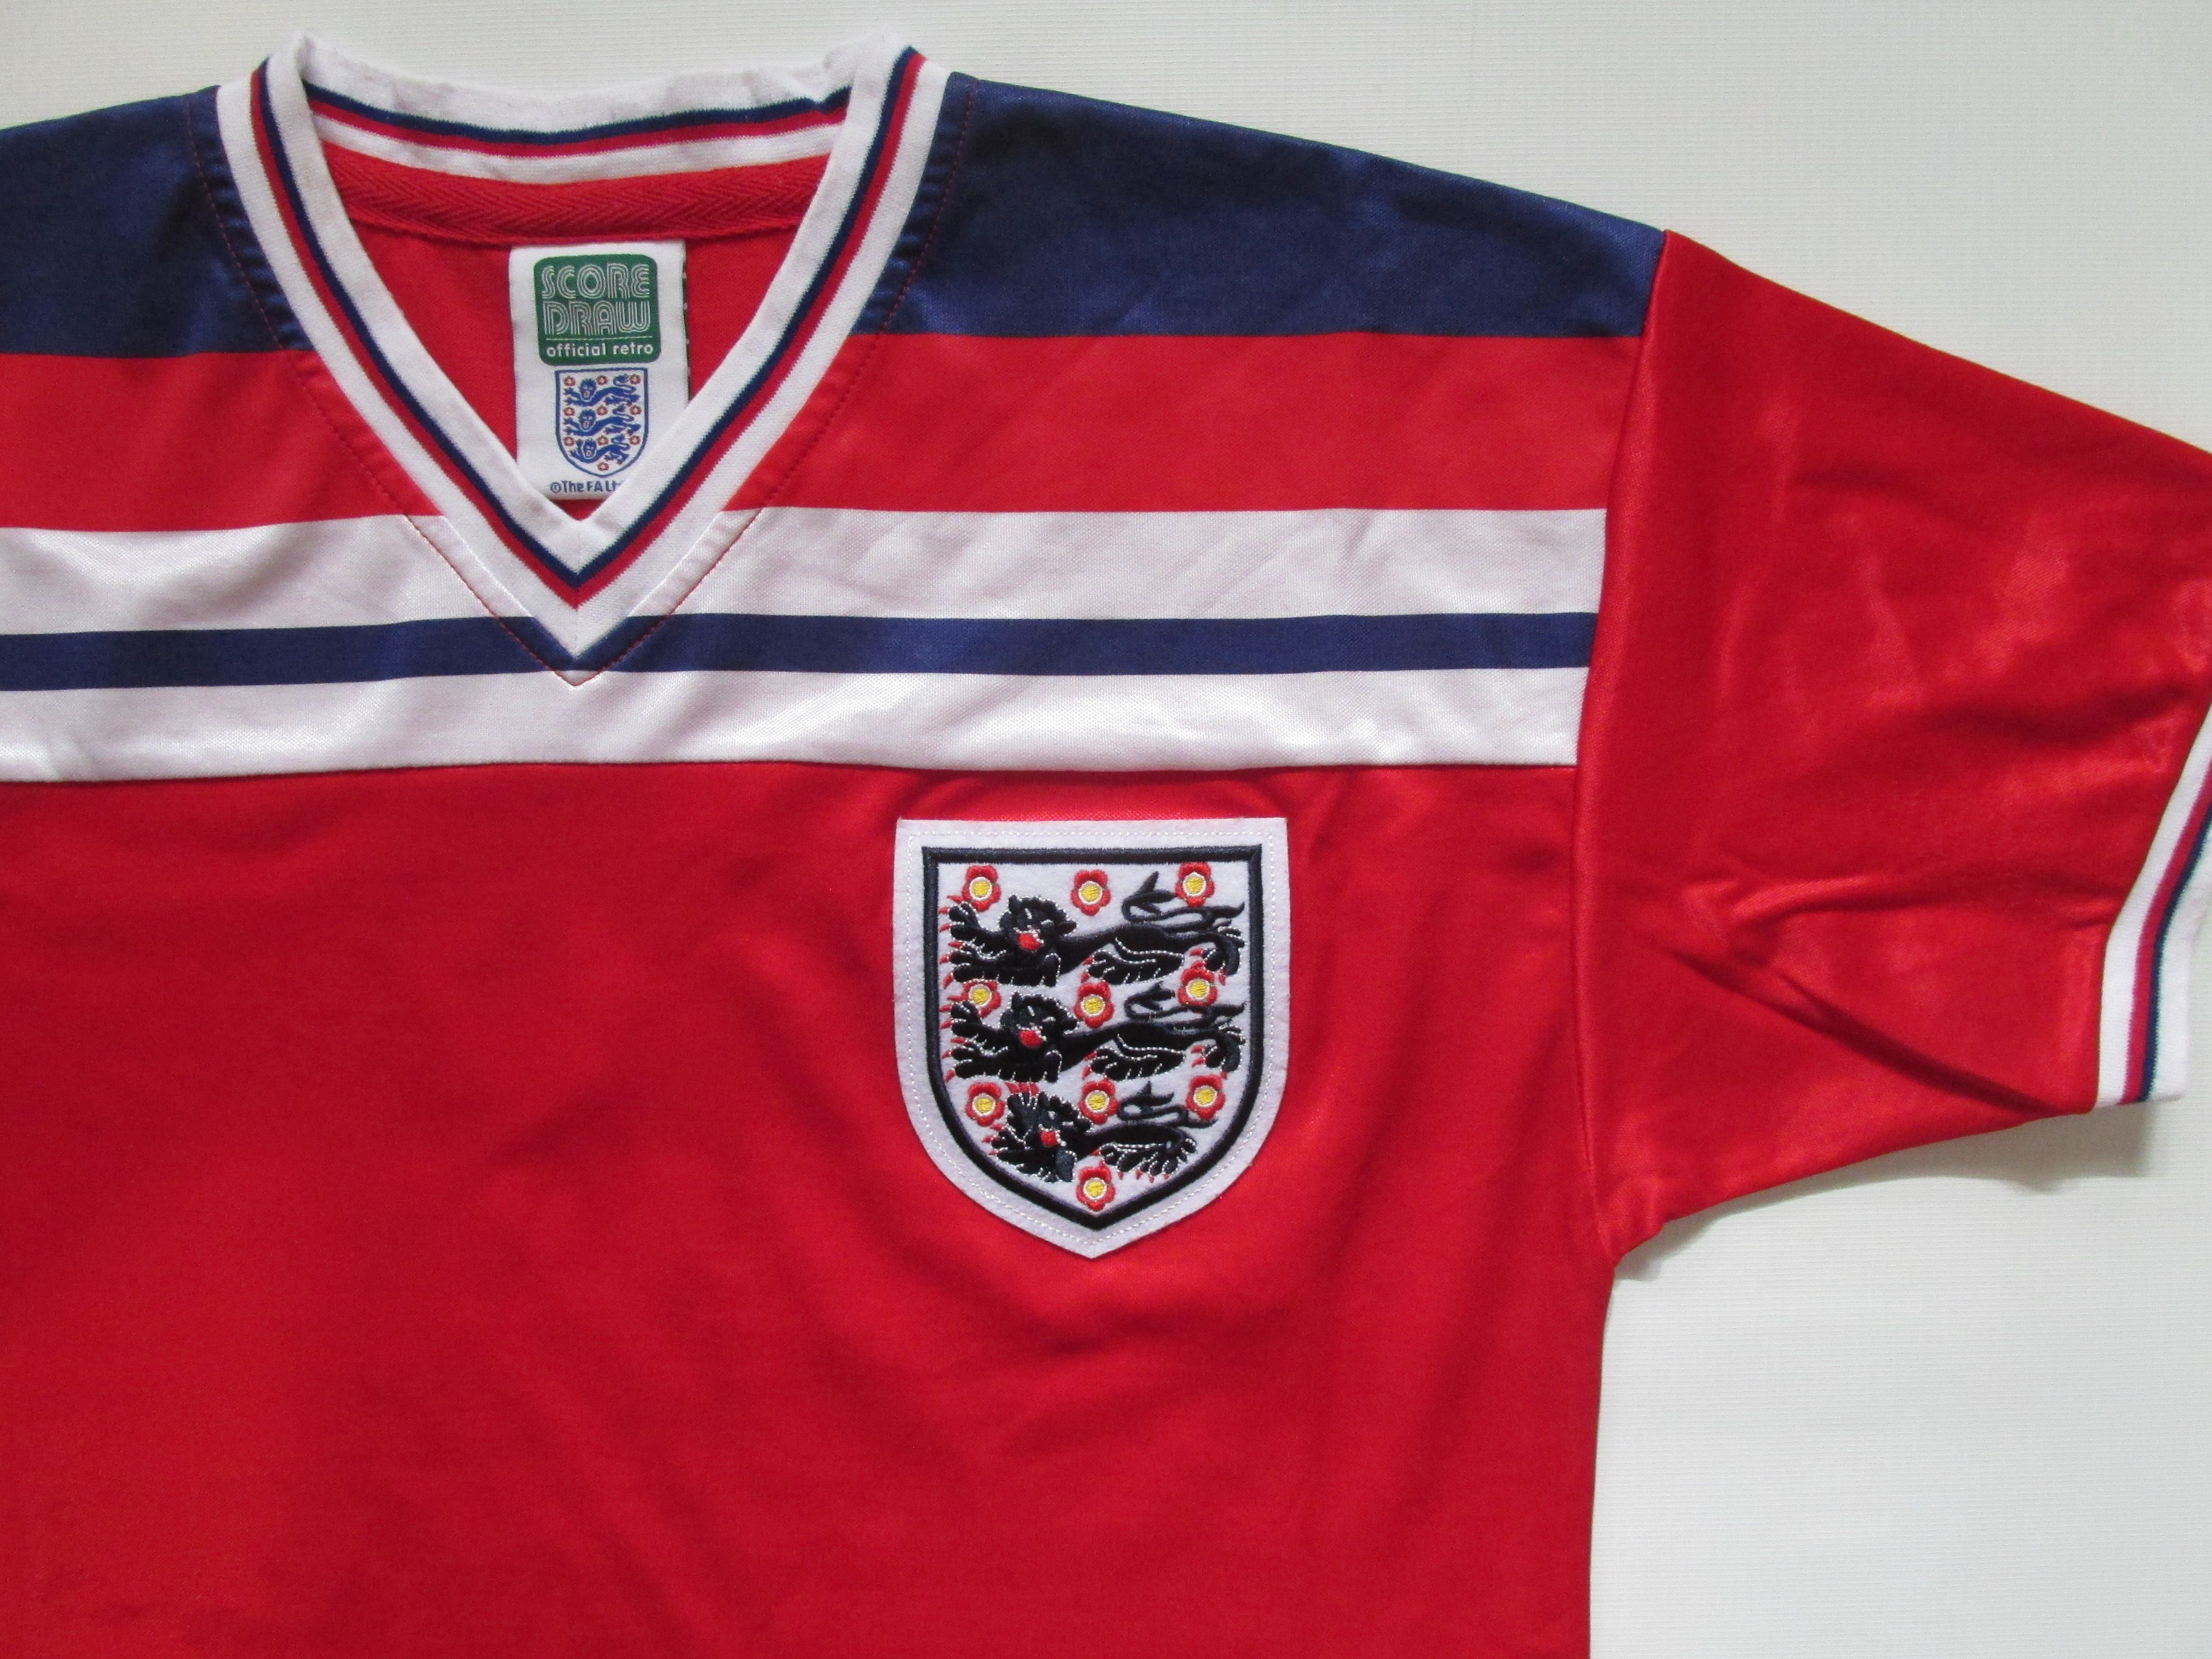 England 1980 1981 1982 1983 Away Football Shirt Retro Replica By Score Draw Threelions Worldcup Soccer Jersey Vintage National Football Teams Jersey World Cup